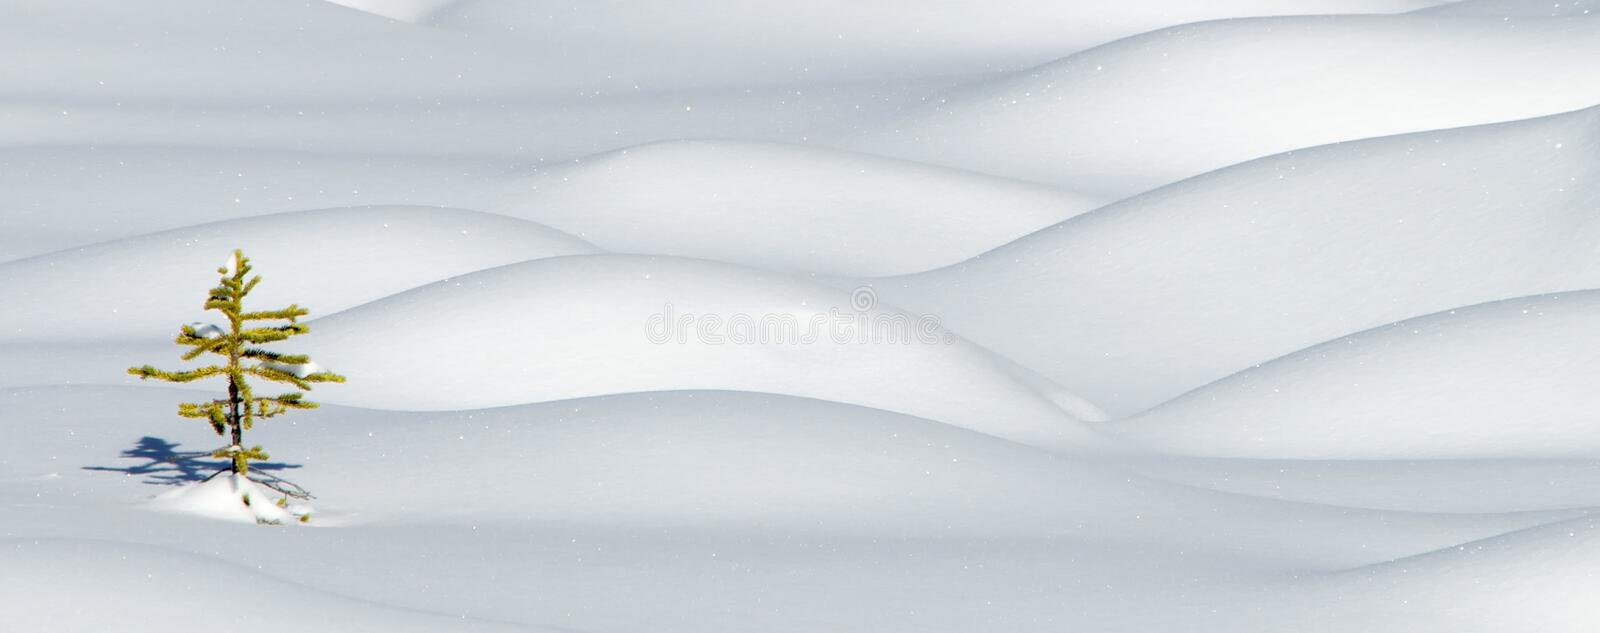 Download Spruce in snow stock photo. Image of sapling, snowy, snow - 8439690